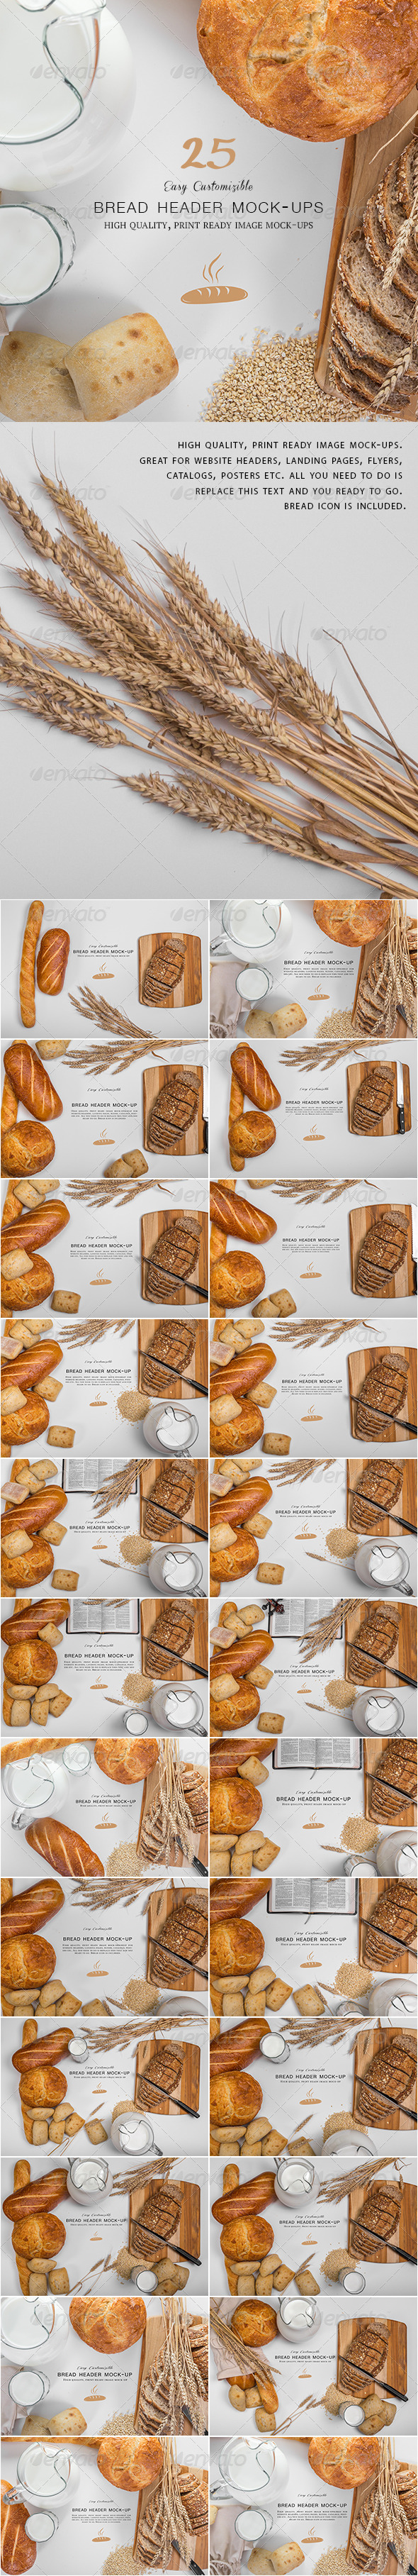 GraphicRiver Bread Header Mock-ups 8114040